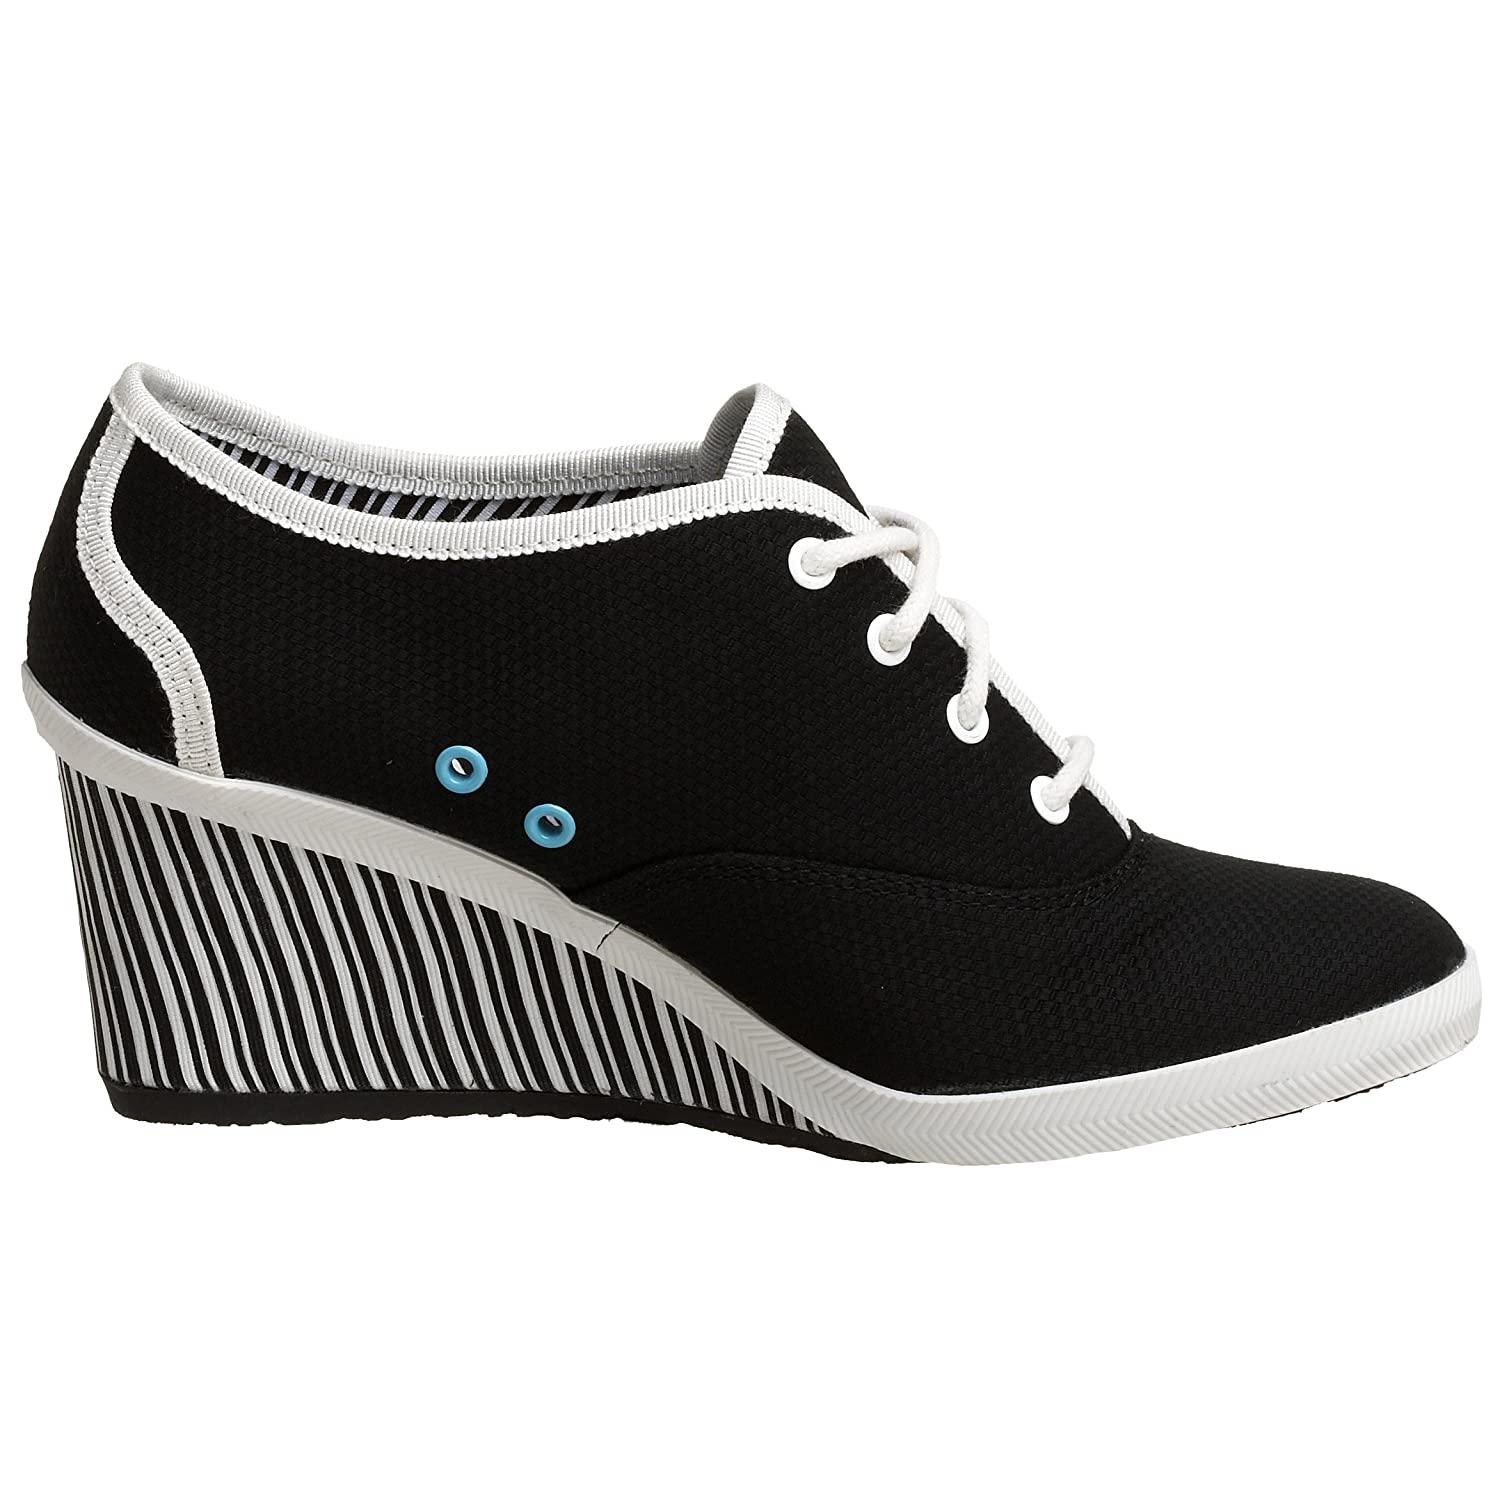 Keds Women's Do-Si-Do Wedge - Free Overnight Shipping & Return Shipping: Endless.com :  rubber sneakers retro keds